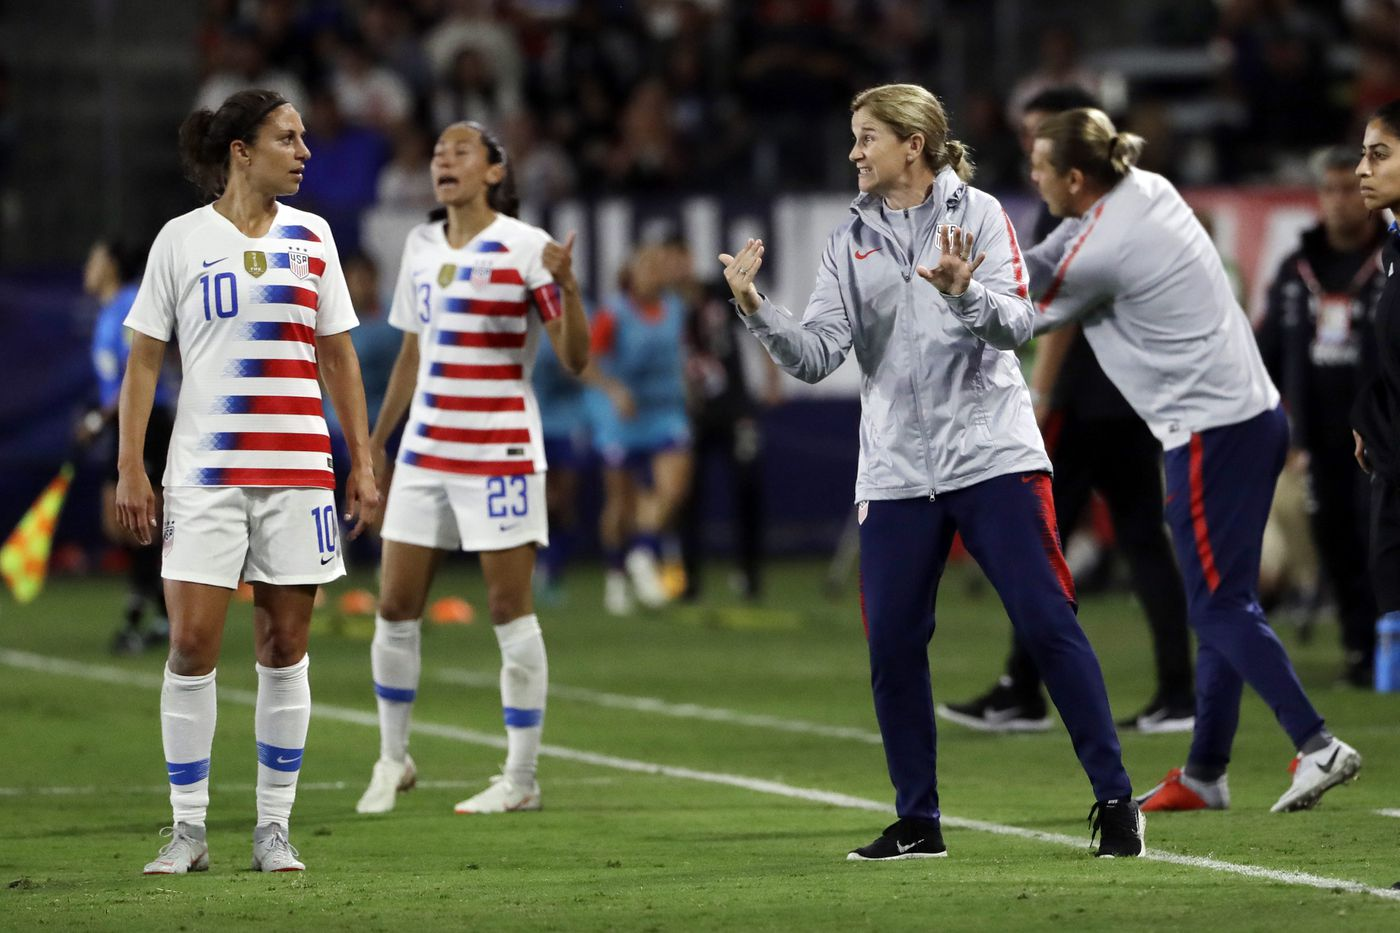 USWNT coach Jill Ellis calls out FIFA's latest gender equity problem: VAR at the World Cup